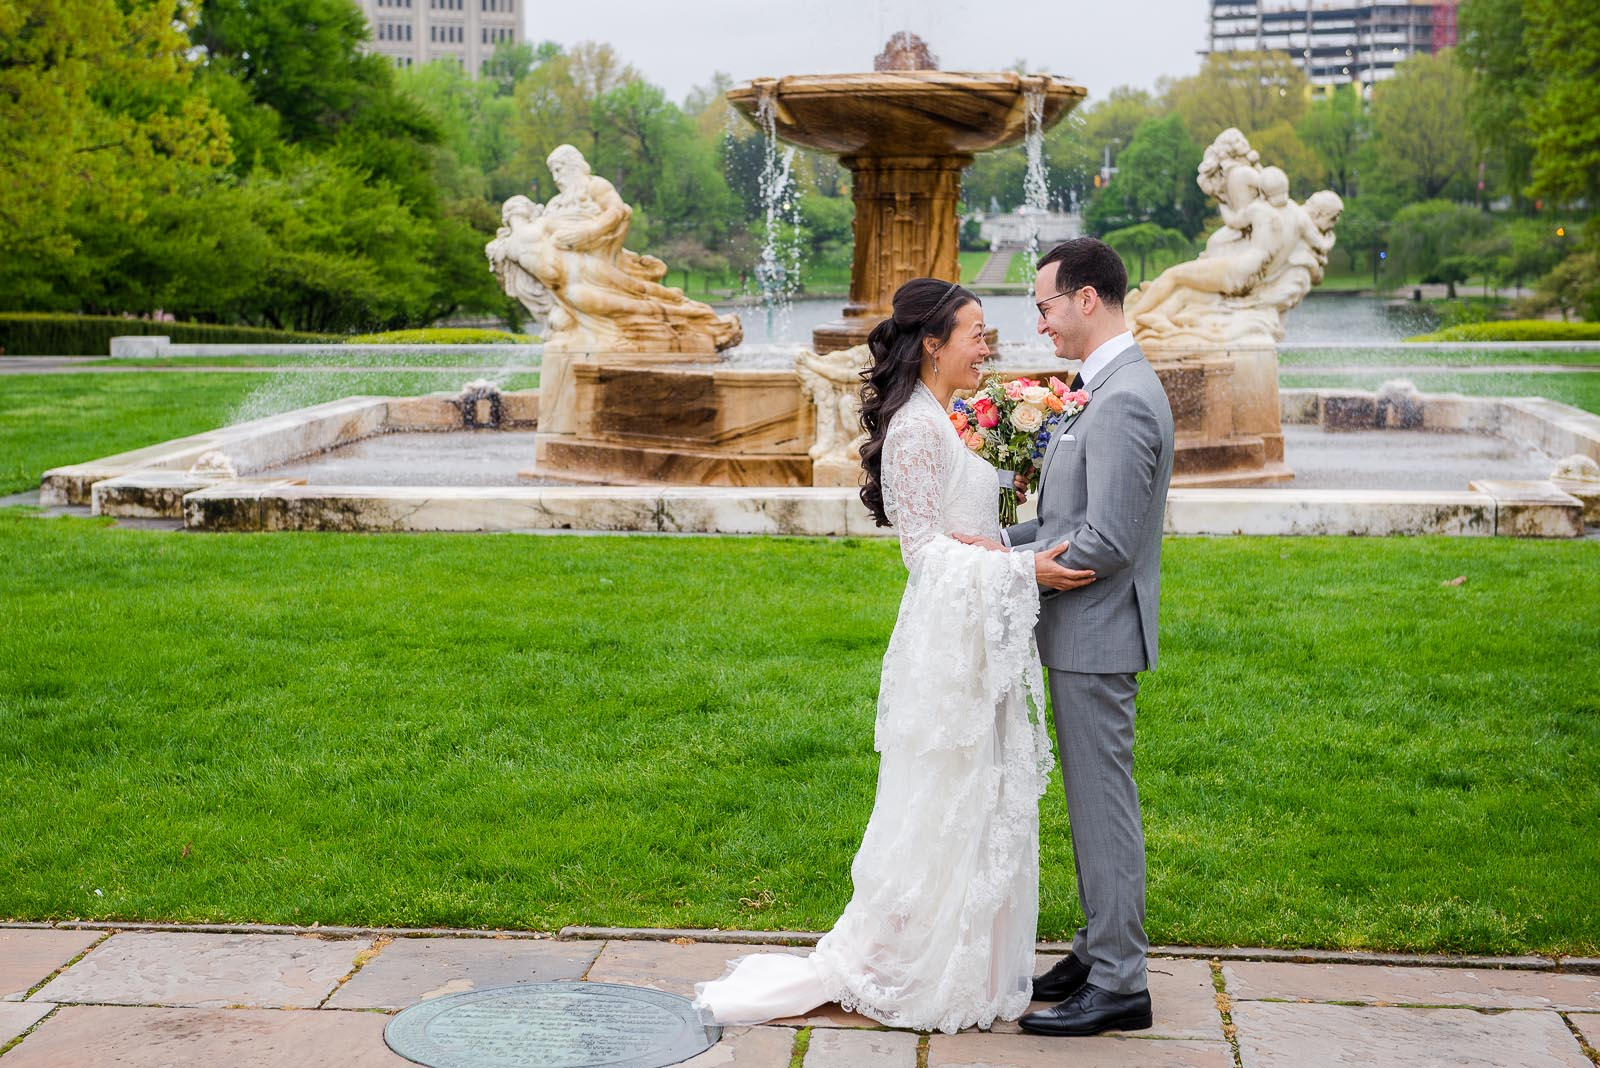 Eric_and_Christy_Photography_Blog_Wedding_Anne_Michael-8